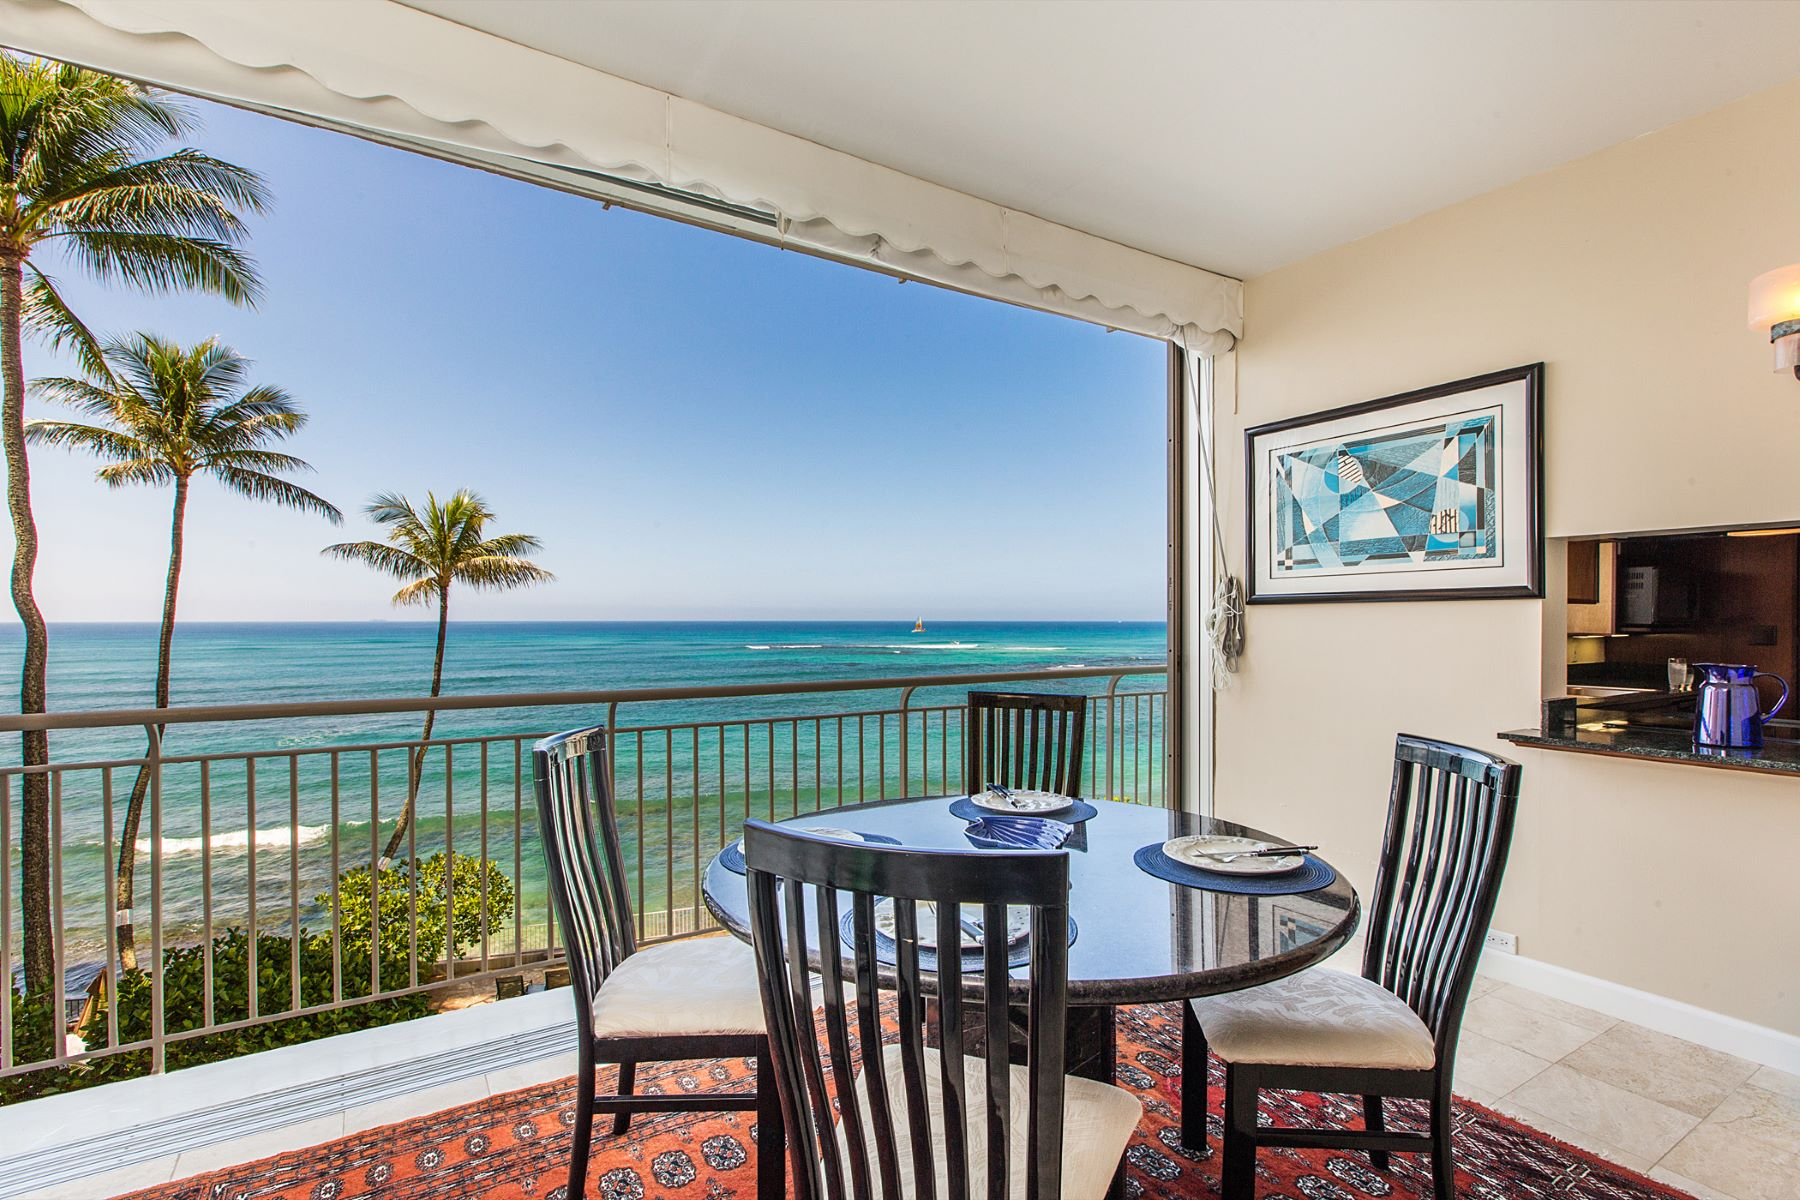 Кондоминиум для того Продажа на Spellbinding Ocean Views 2969 Kalakaua Avenue #202, Diamond Head, Honolulu, Гавайи, 96815 Соединенные Штаты